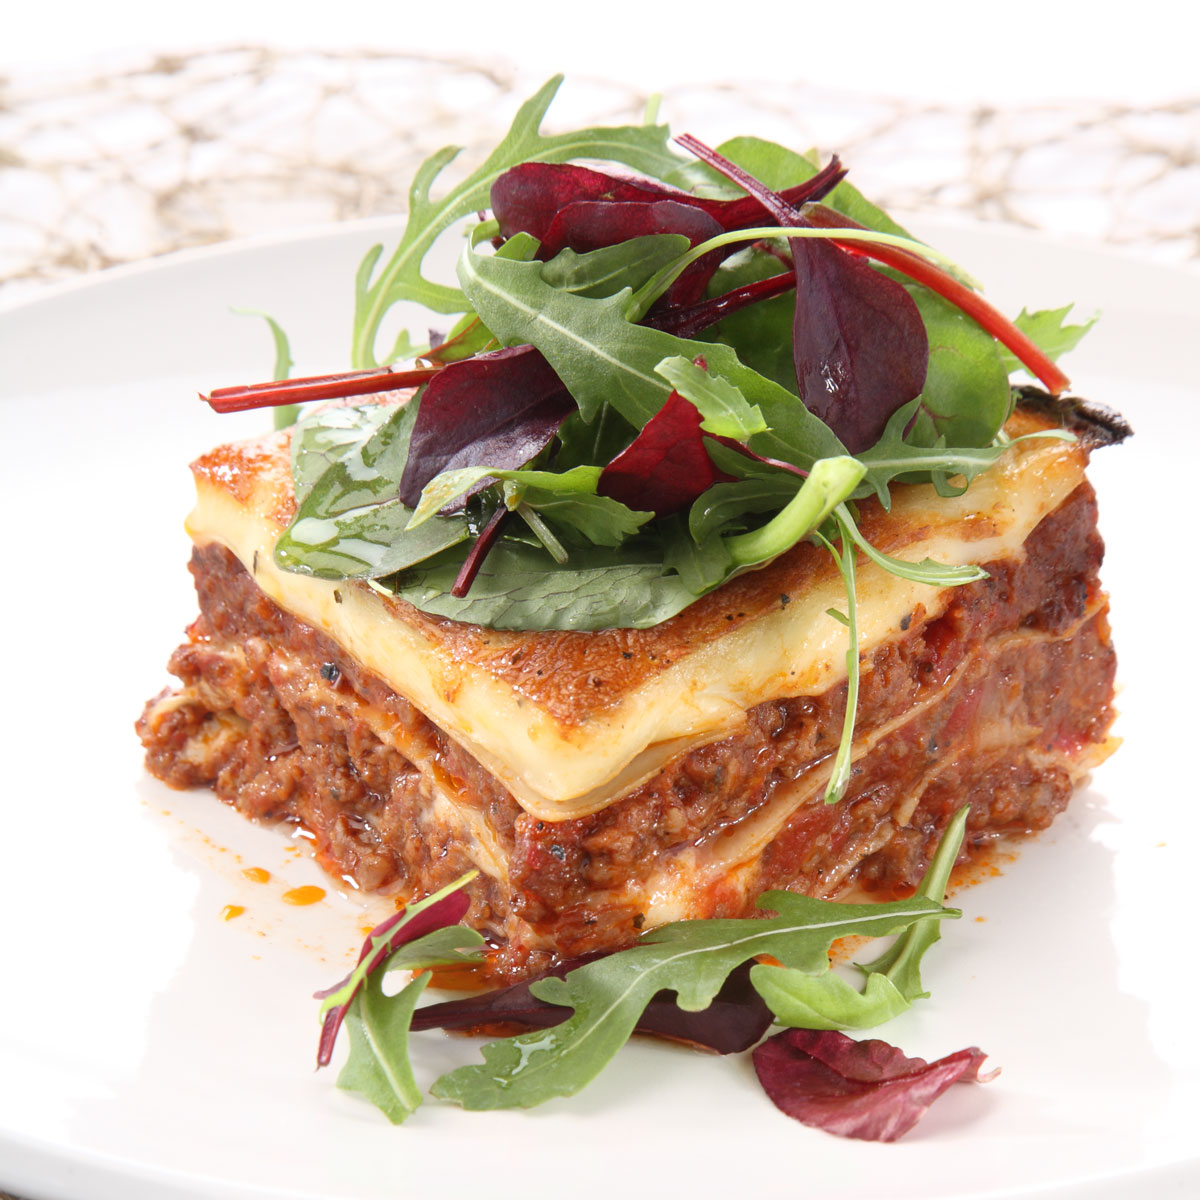 Lasagne 3 varieties to choose from home cooked food delivered we deliver your food fresh to your door using specialised packaging and speedy carriers keeping your food fresh up to 48 hours from delivery forumfinder Gallery